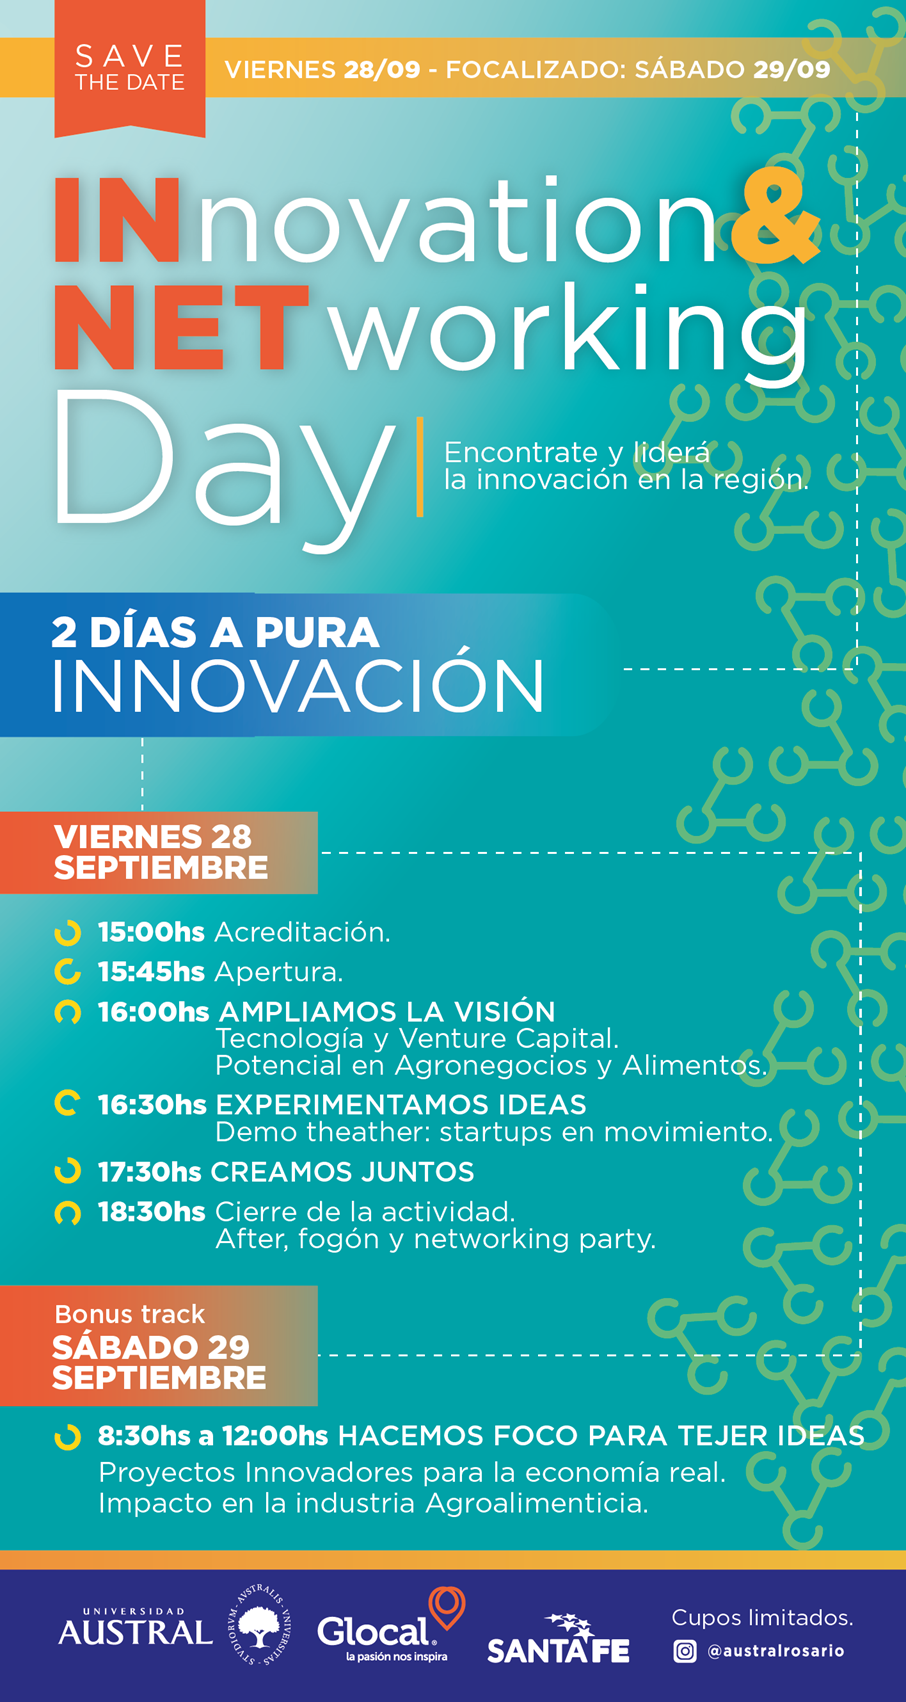 INnovation & NETworking DAY